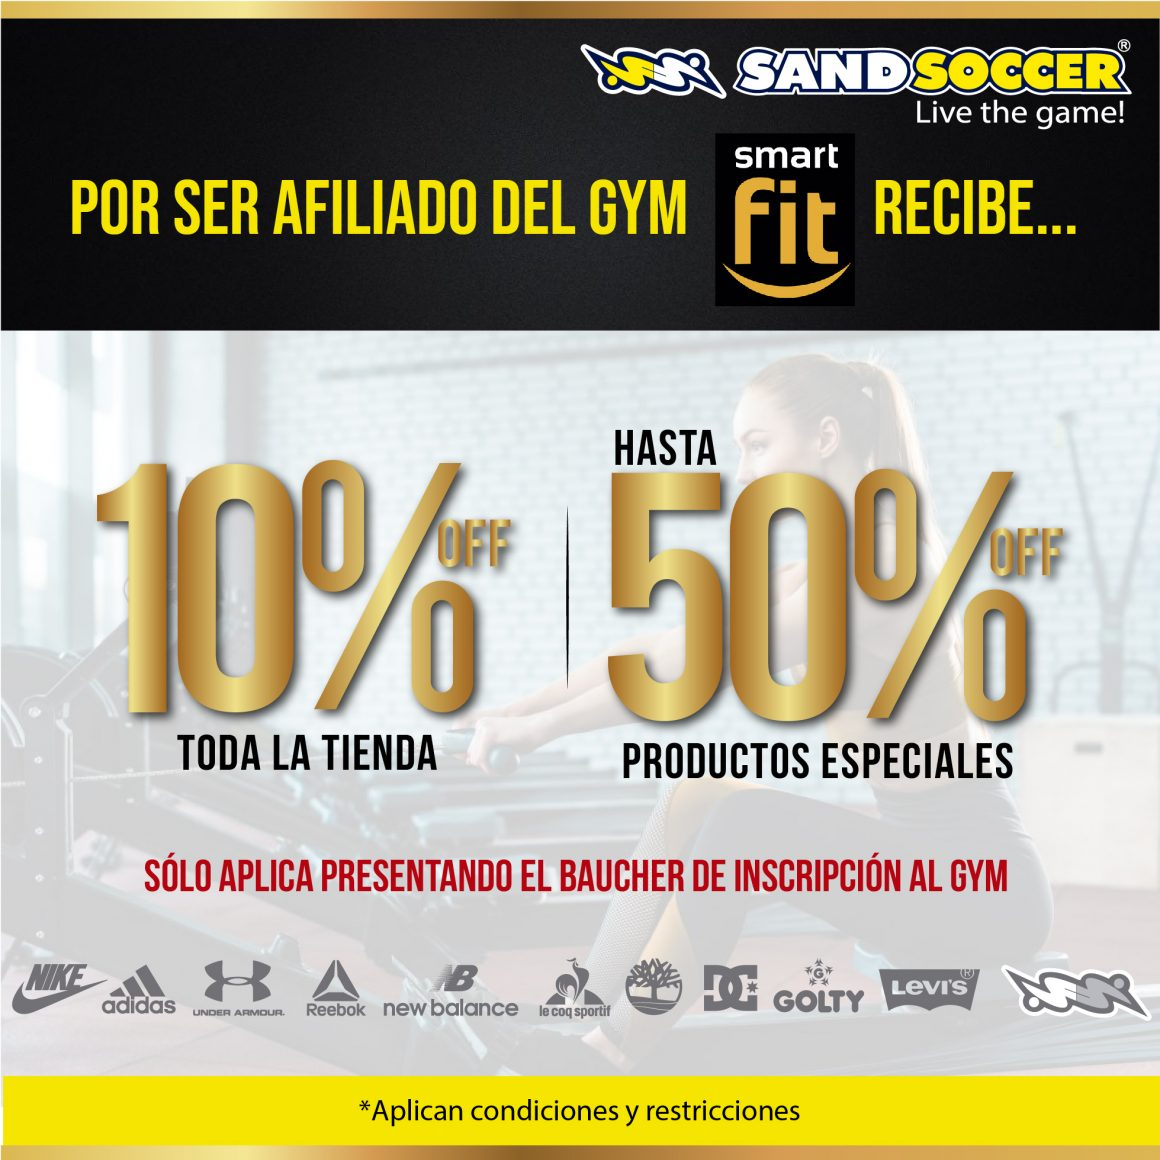 Sandsoccer y Smart Fit